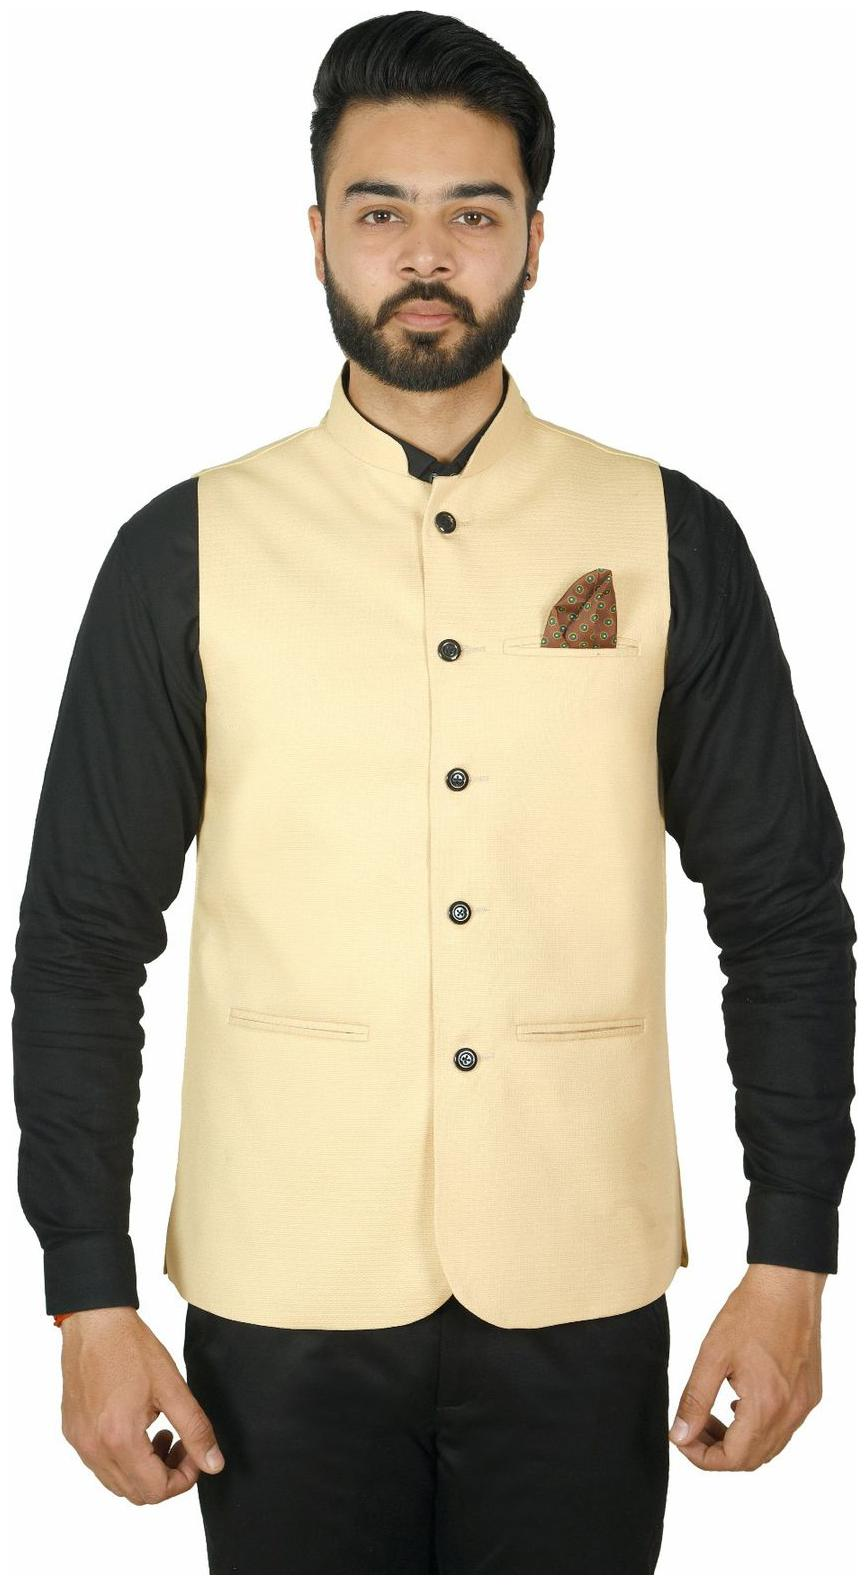 https://assetscdn1.paytm.com/images/catalog/product/A/AP/APPWEARZA-MEN-SWEAR82697621FE6D7A/1562873695095_0..jpg